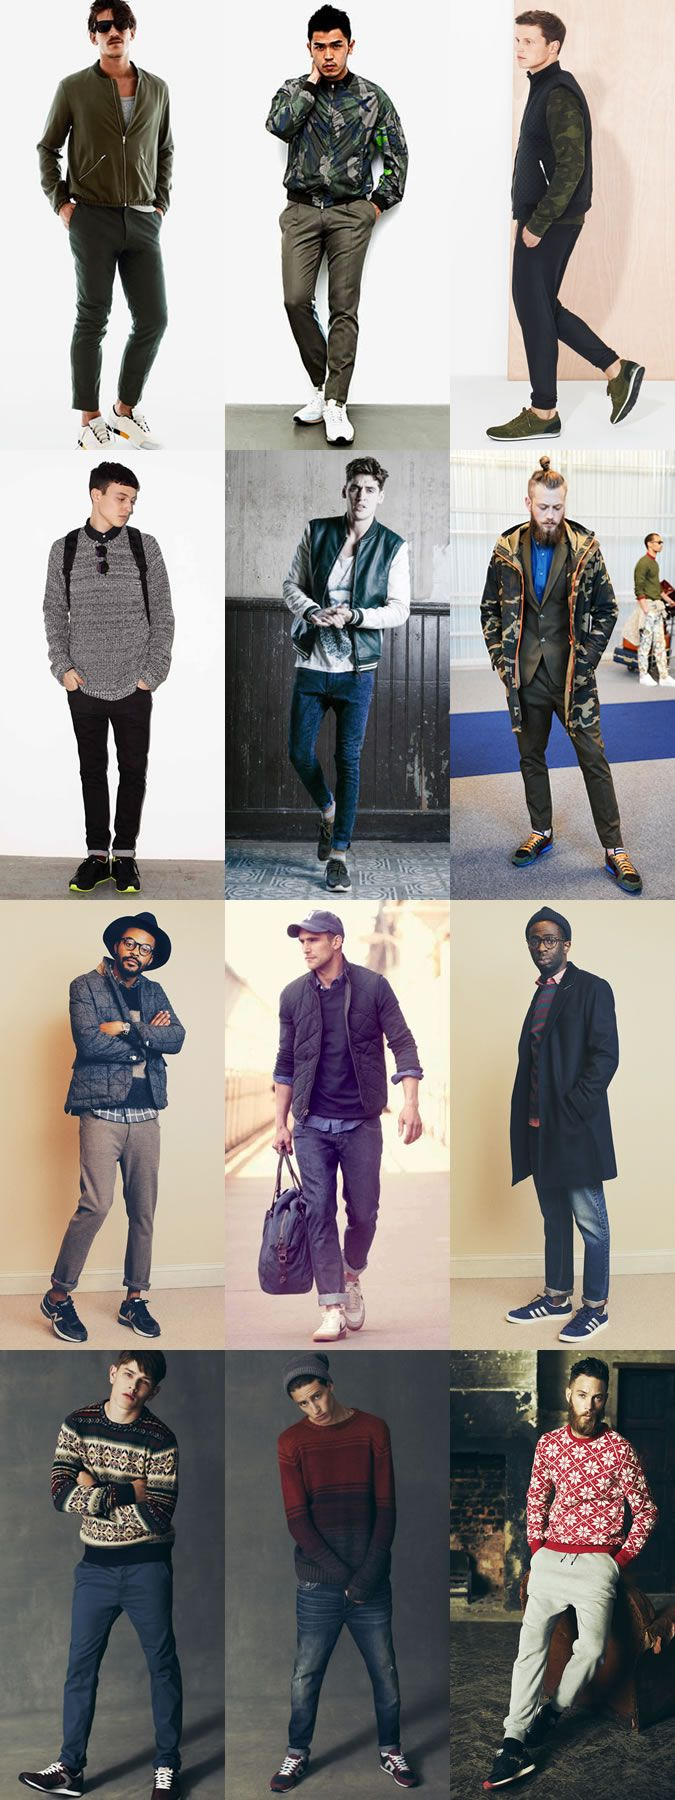 Men's Retro Running Trainers Lookbook Outfit Inspiration